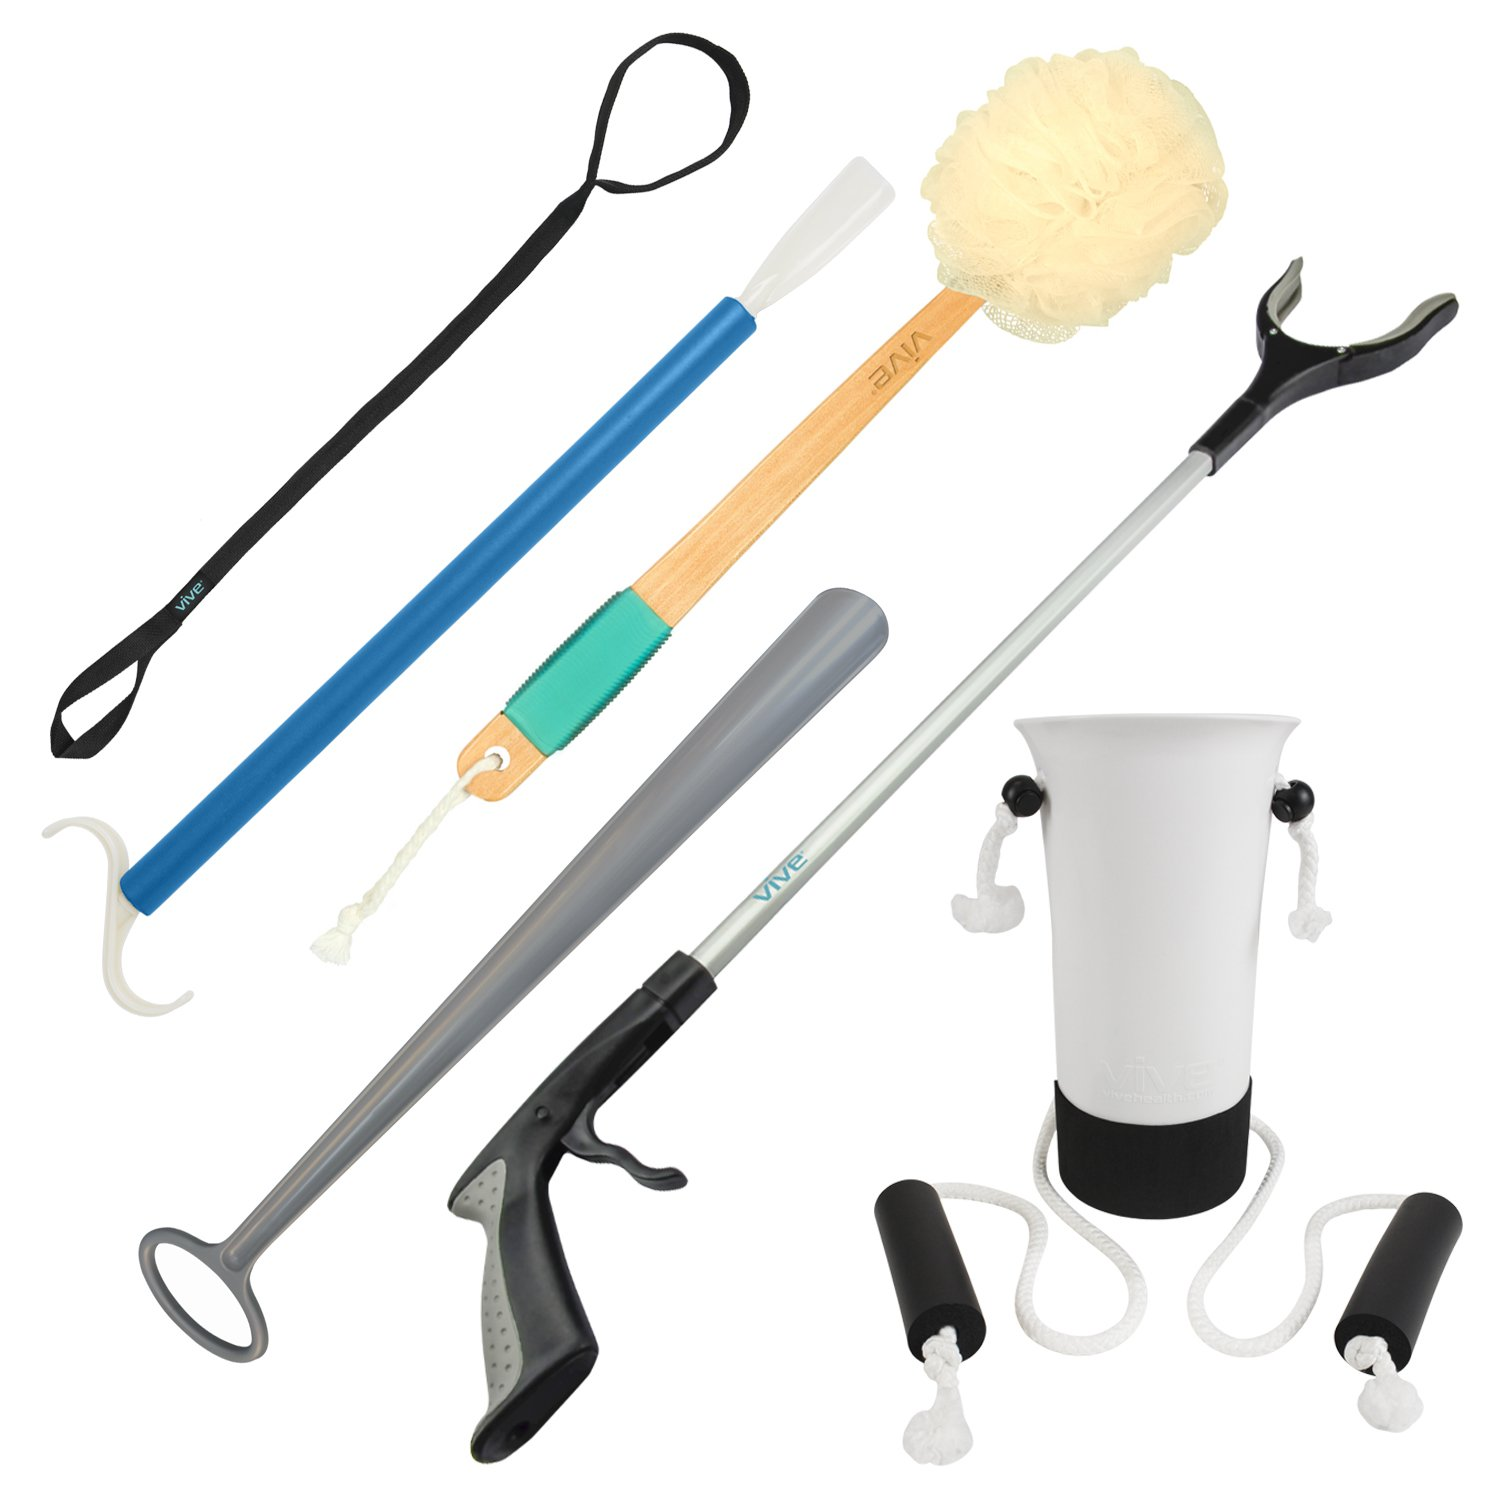 Hip And Knee Replacement Kit by Vive - 6 Piece Surgery Recovery Set - Handicap Aid Package, Leg Loop Lifter, Reacher Grabber, Long Handle Shoe Horn, Shower Loofah Scrubber, Sock Assist, Dressing Stick by VIVE